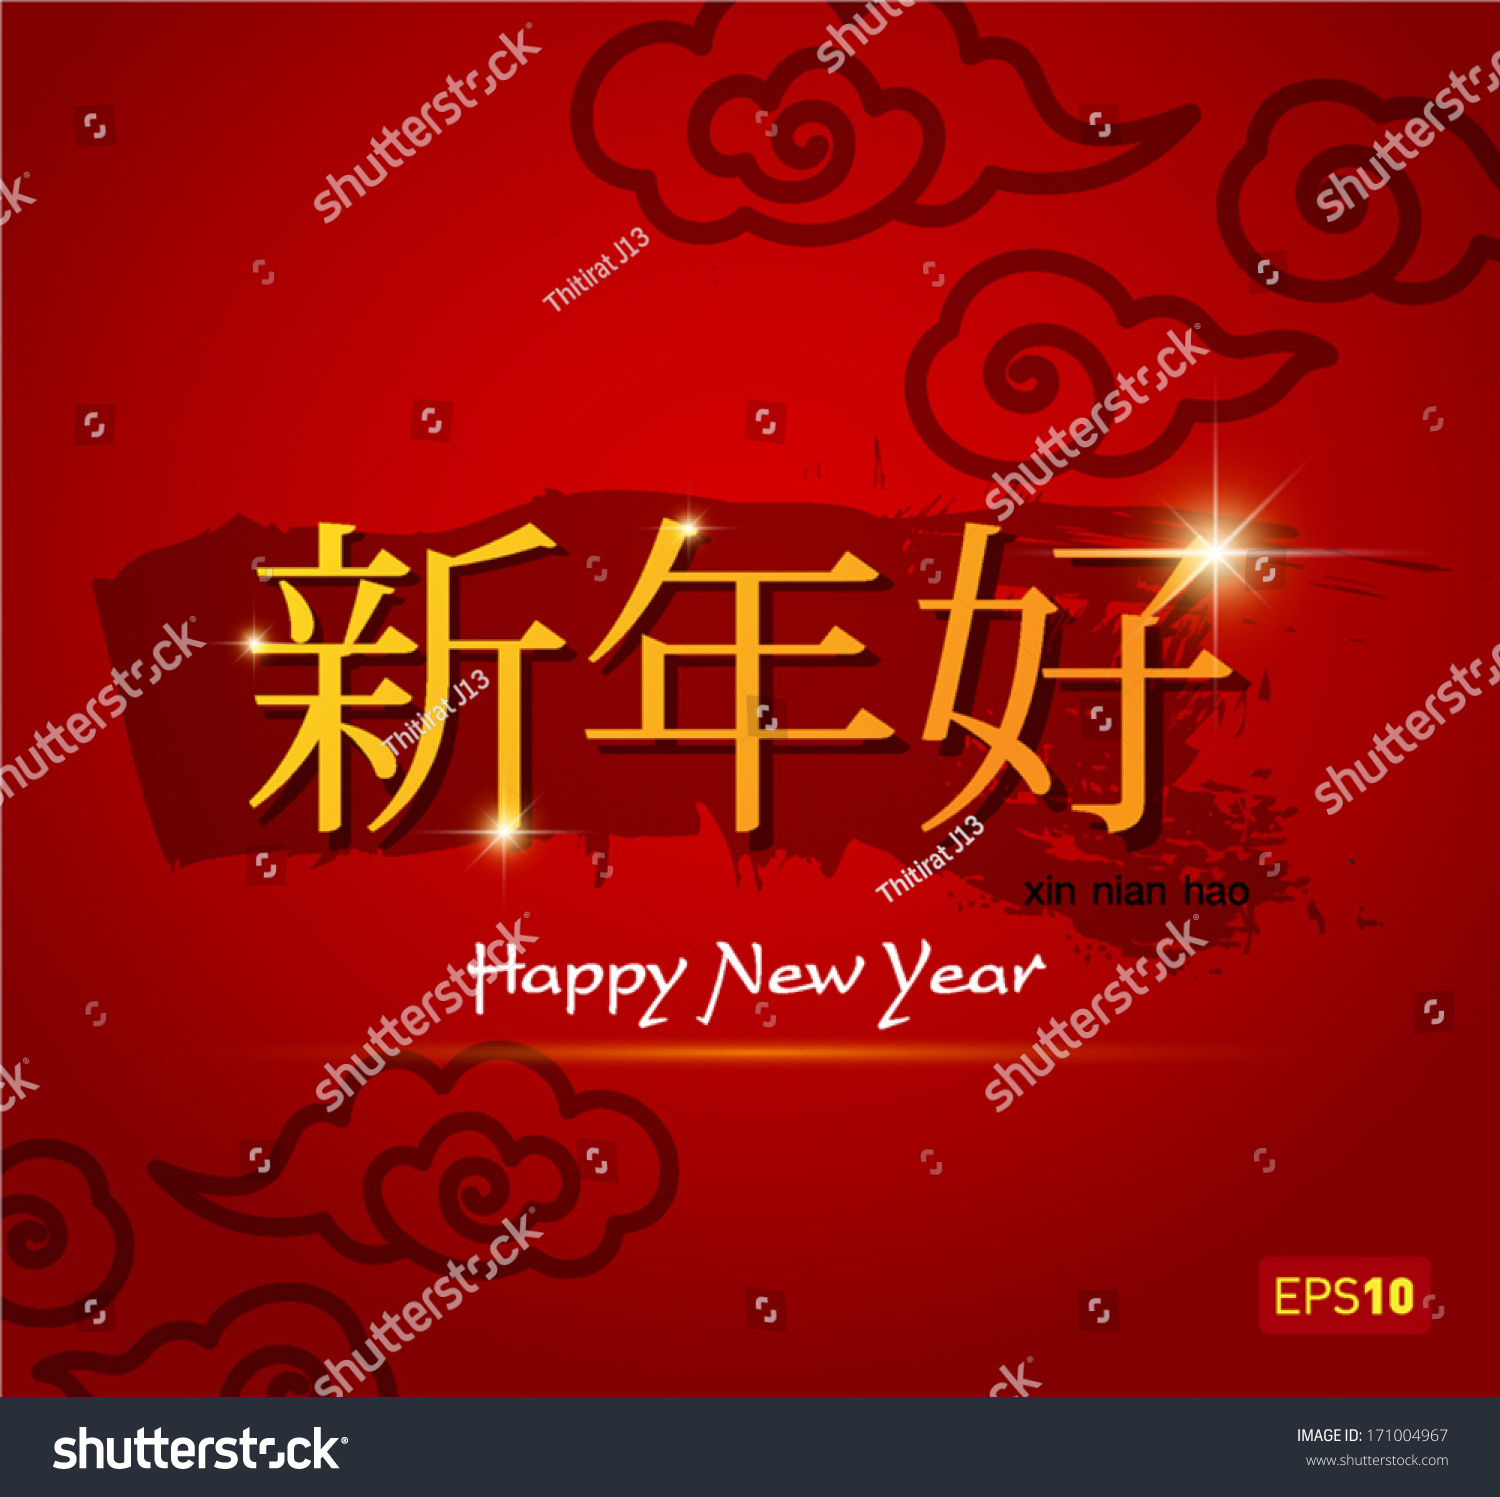 Chinese New Year Vector Design Stock Vector Royalty Free 171004967